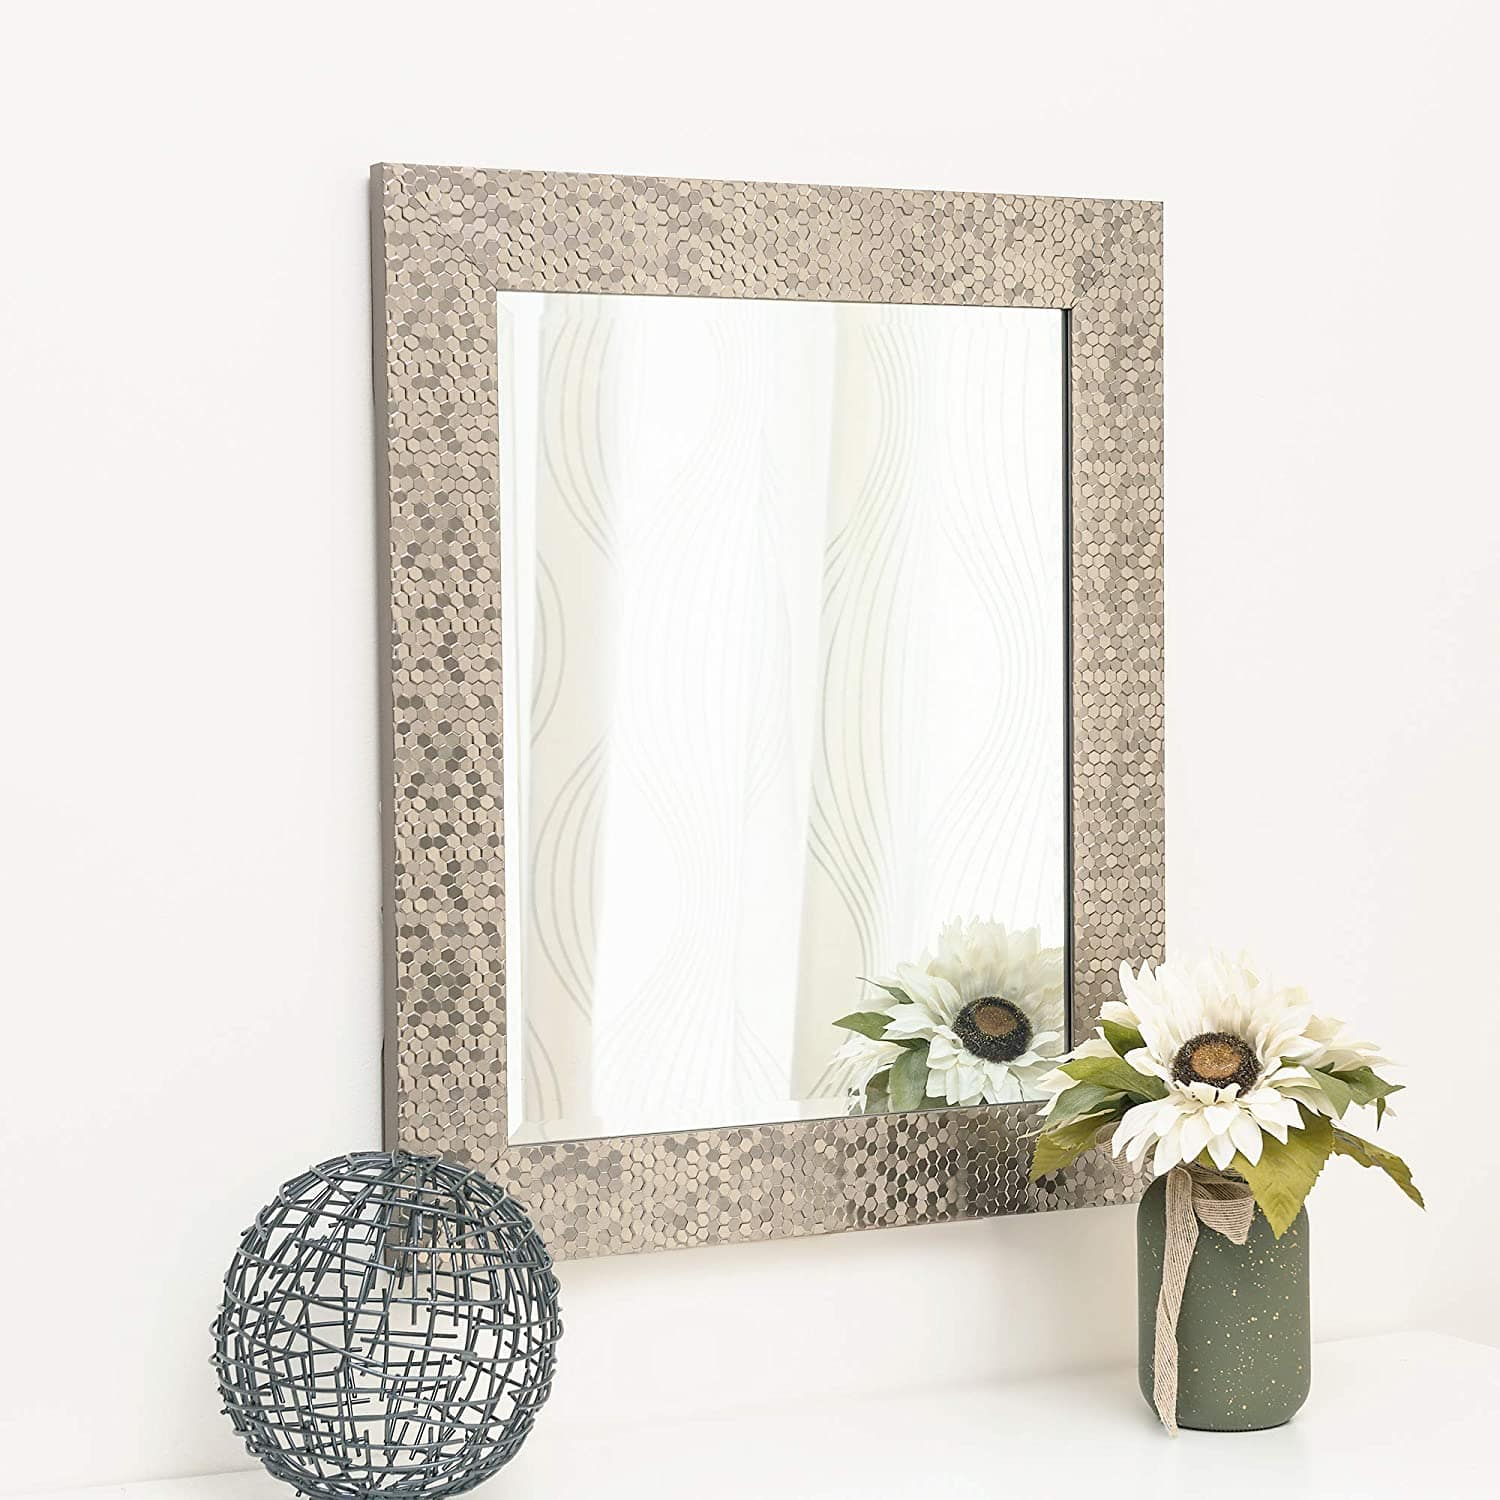 Wall Beveled Mirror Framed Rectangular Frame Hangs Horizontal & Vertical (27x33 and other sizes) - $40 AC + FS